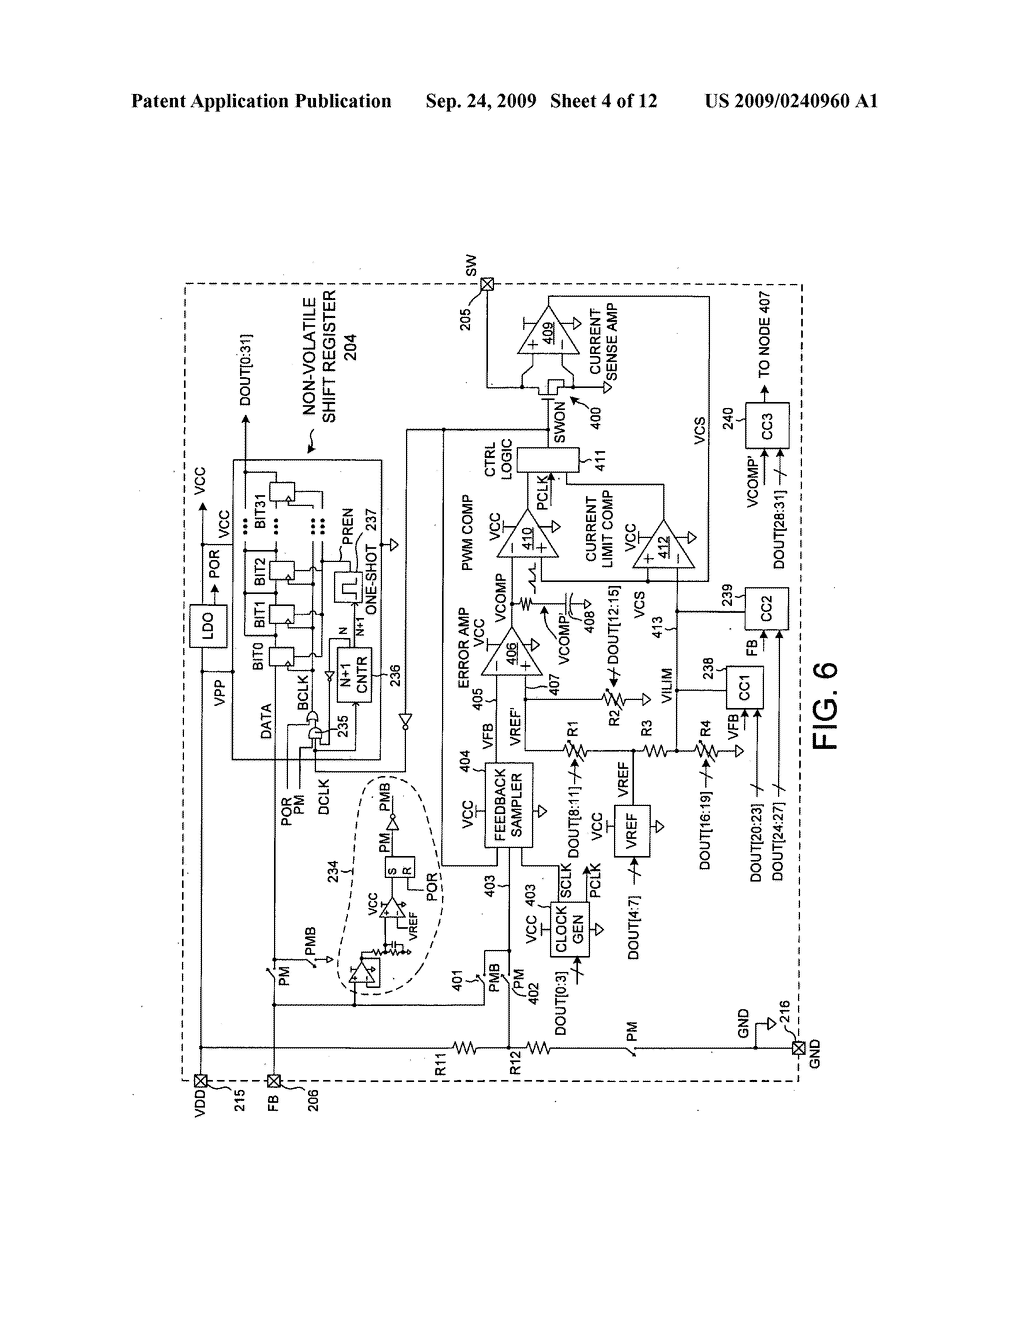 Cc Circuit Diagram Trusted Wiring Nonisolated Power Supply Using Lytswitch0 Family Eeweb Serially Loading Programming Information Into A Psr Cv Controller Soldering Iron Source